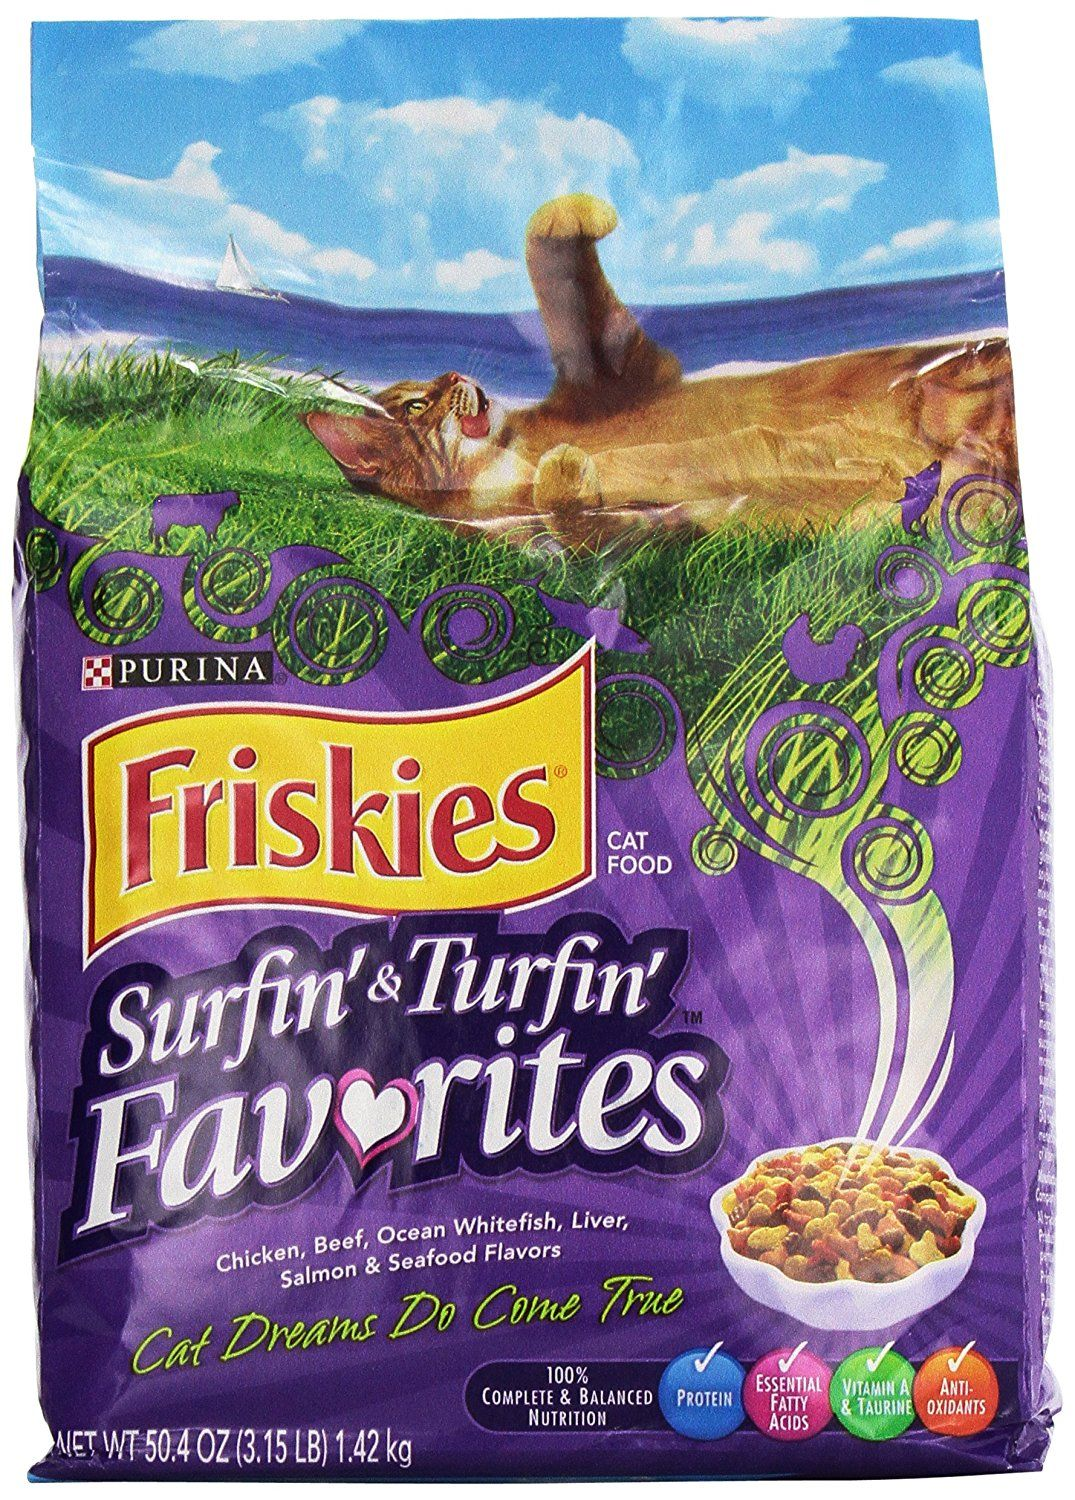 Friskies Feline Favorites Dry Cat Food 3 15 Lbs To View Further For This Item Visit The Image Link This Is An Affiliate Dry Cat Food Friskies Cat Food